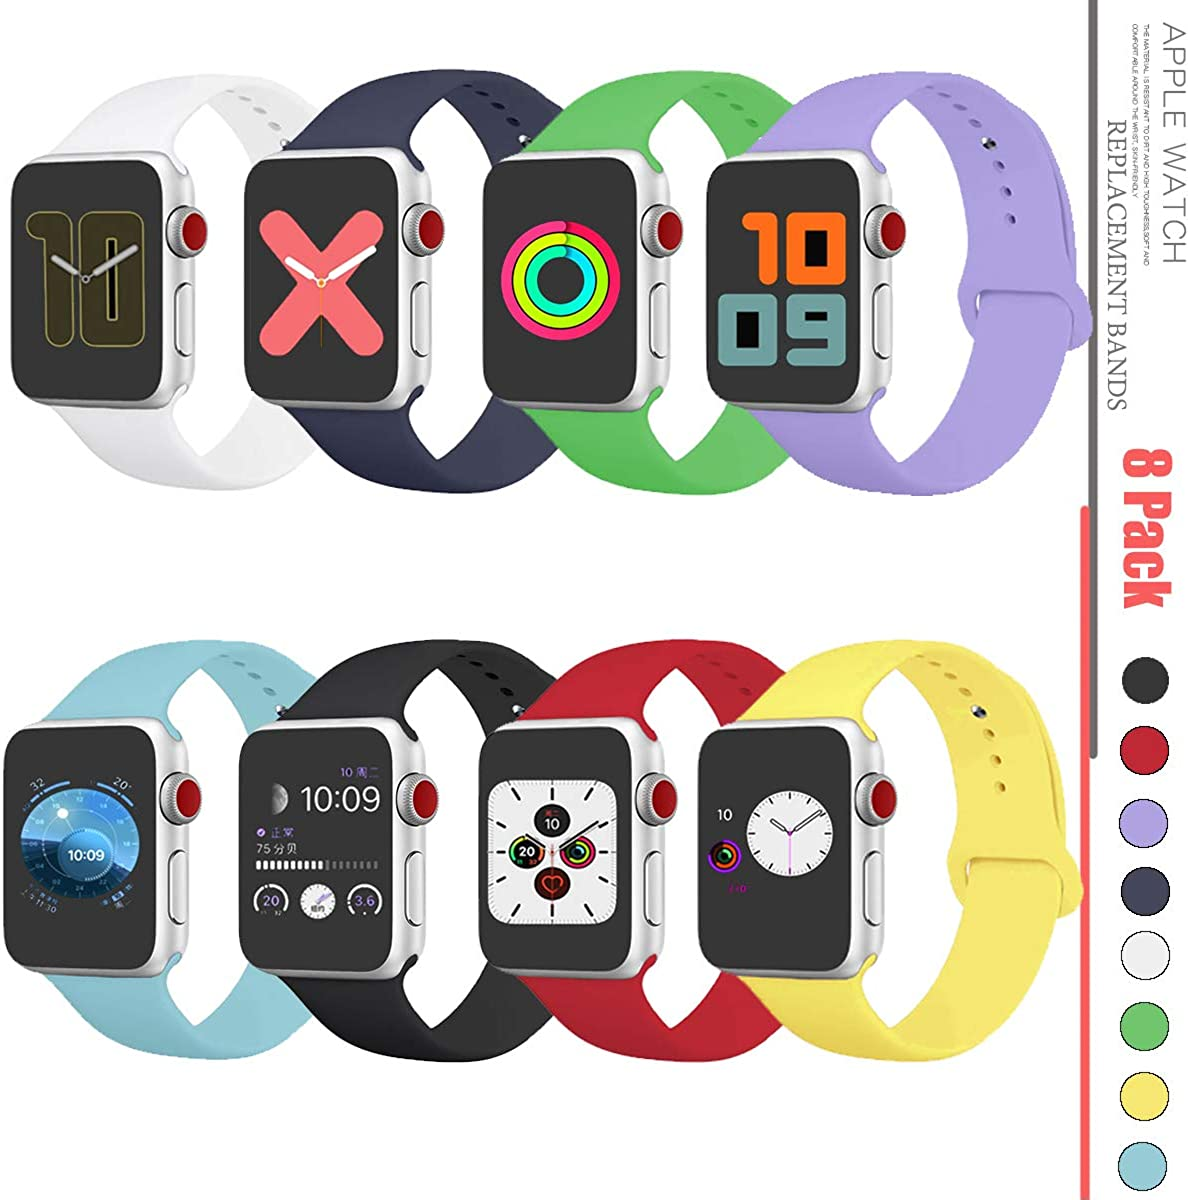 Compatible with Apple Watch Band 38mm,Apple Watch Band 40mm,Apple Watch Band 42mm,Apple Watch Band 44mm,Apple Watch Series 1/2/3/4/5/6/SE Band Wristbands